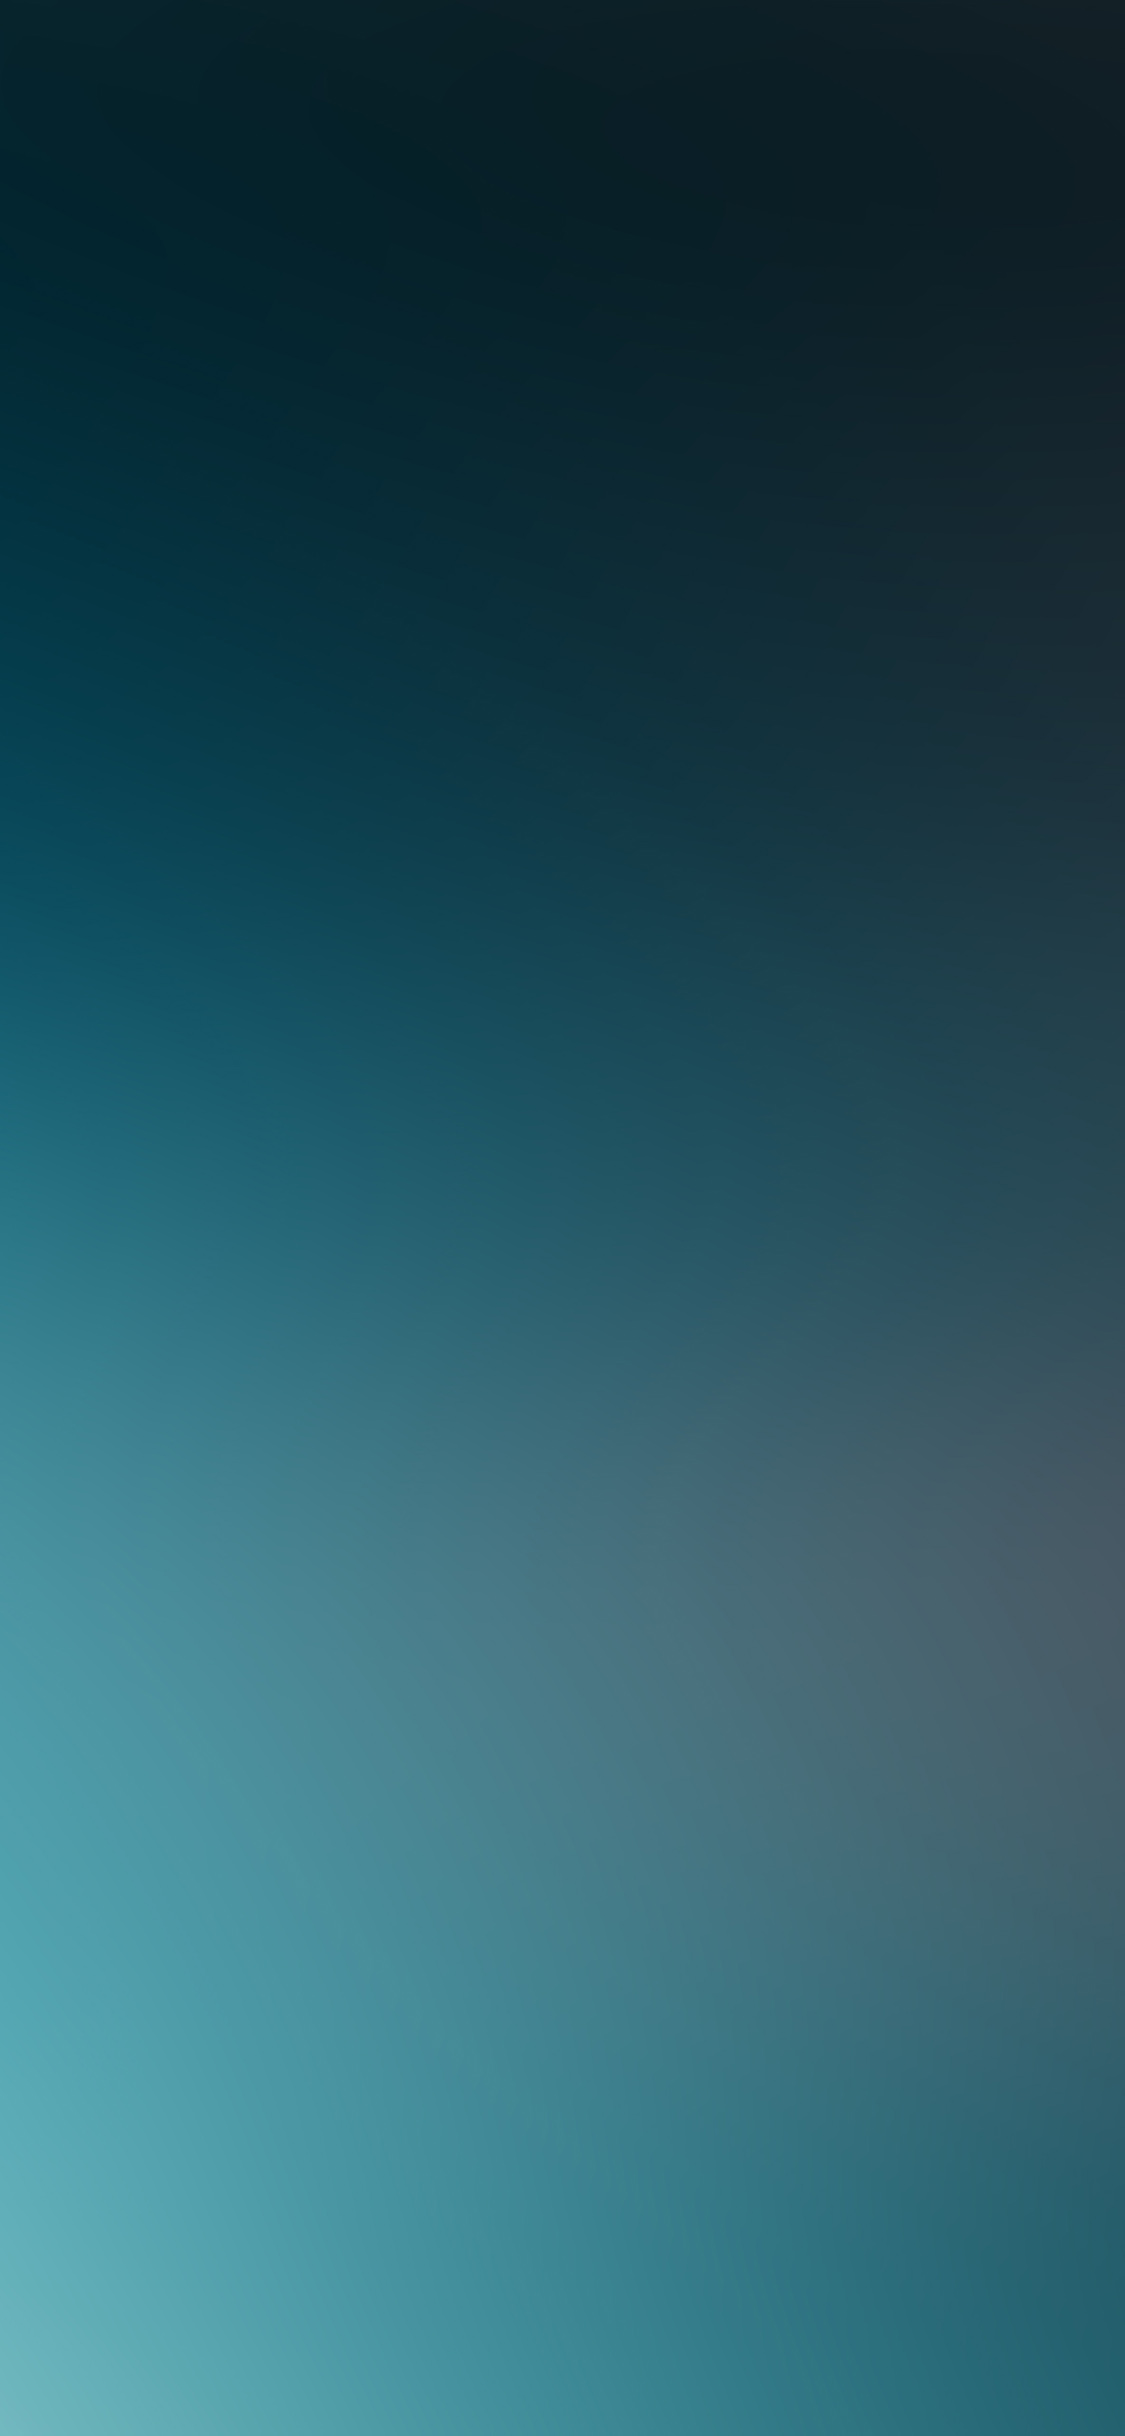 iPhoneXpapers.com-Apple-iPhone-wallpaper-si27-dark-green-gradation-blur